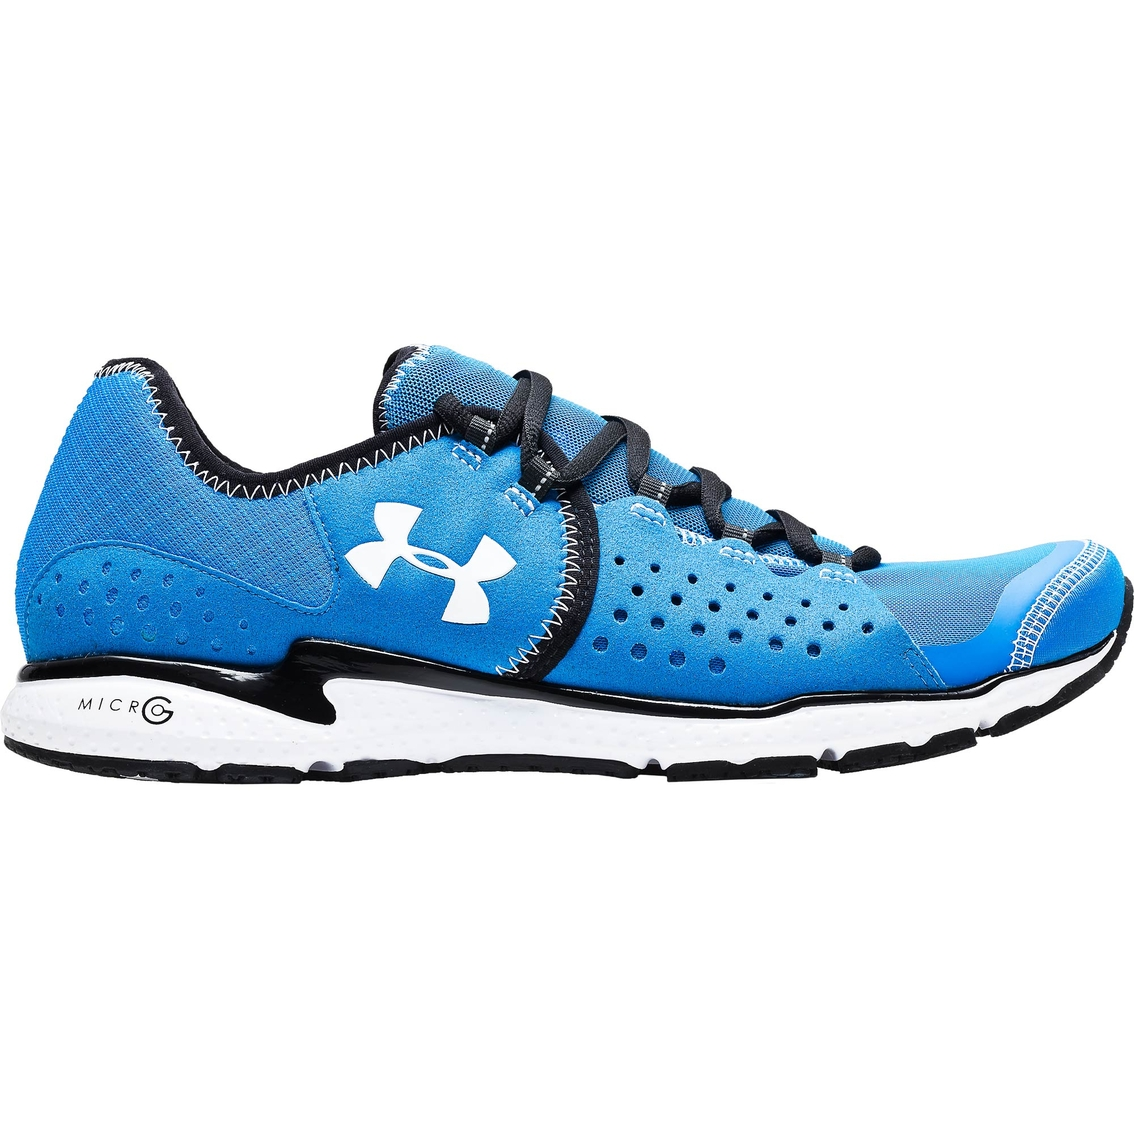 4a869037496 Under Armour Men s Micro G Mantis Running Shoes